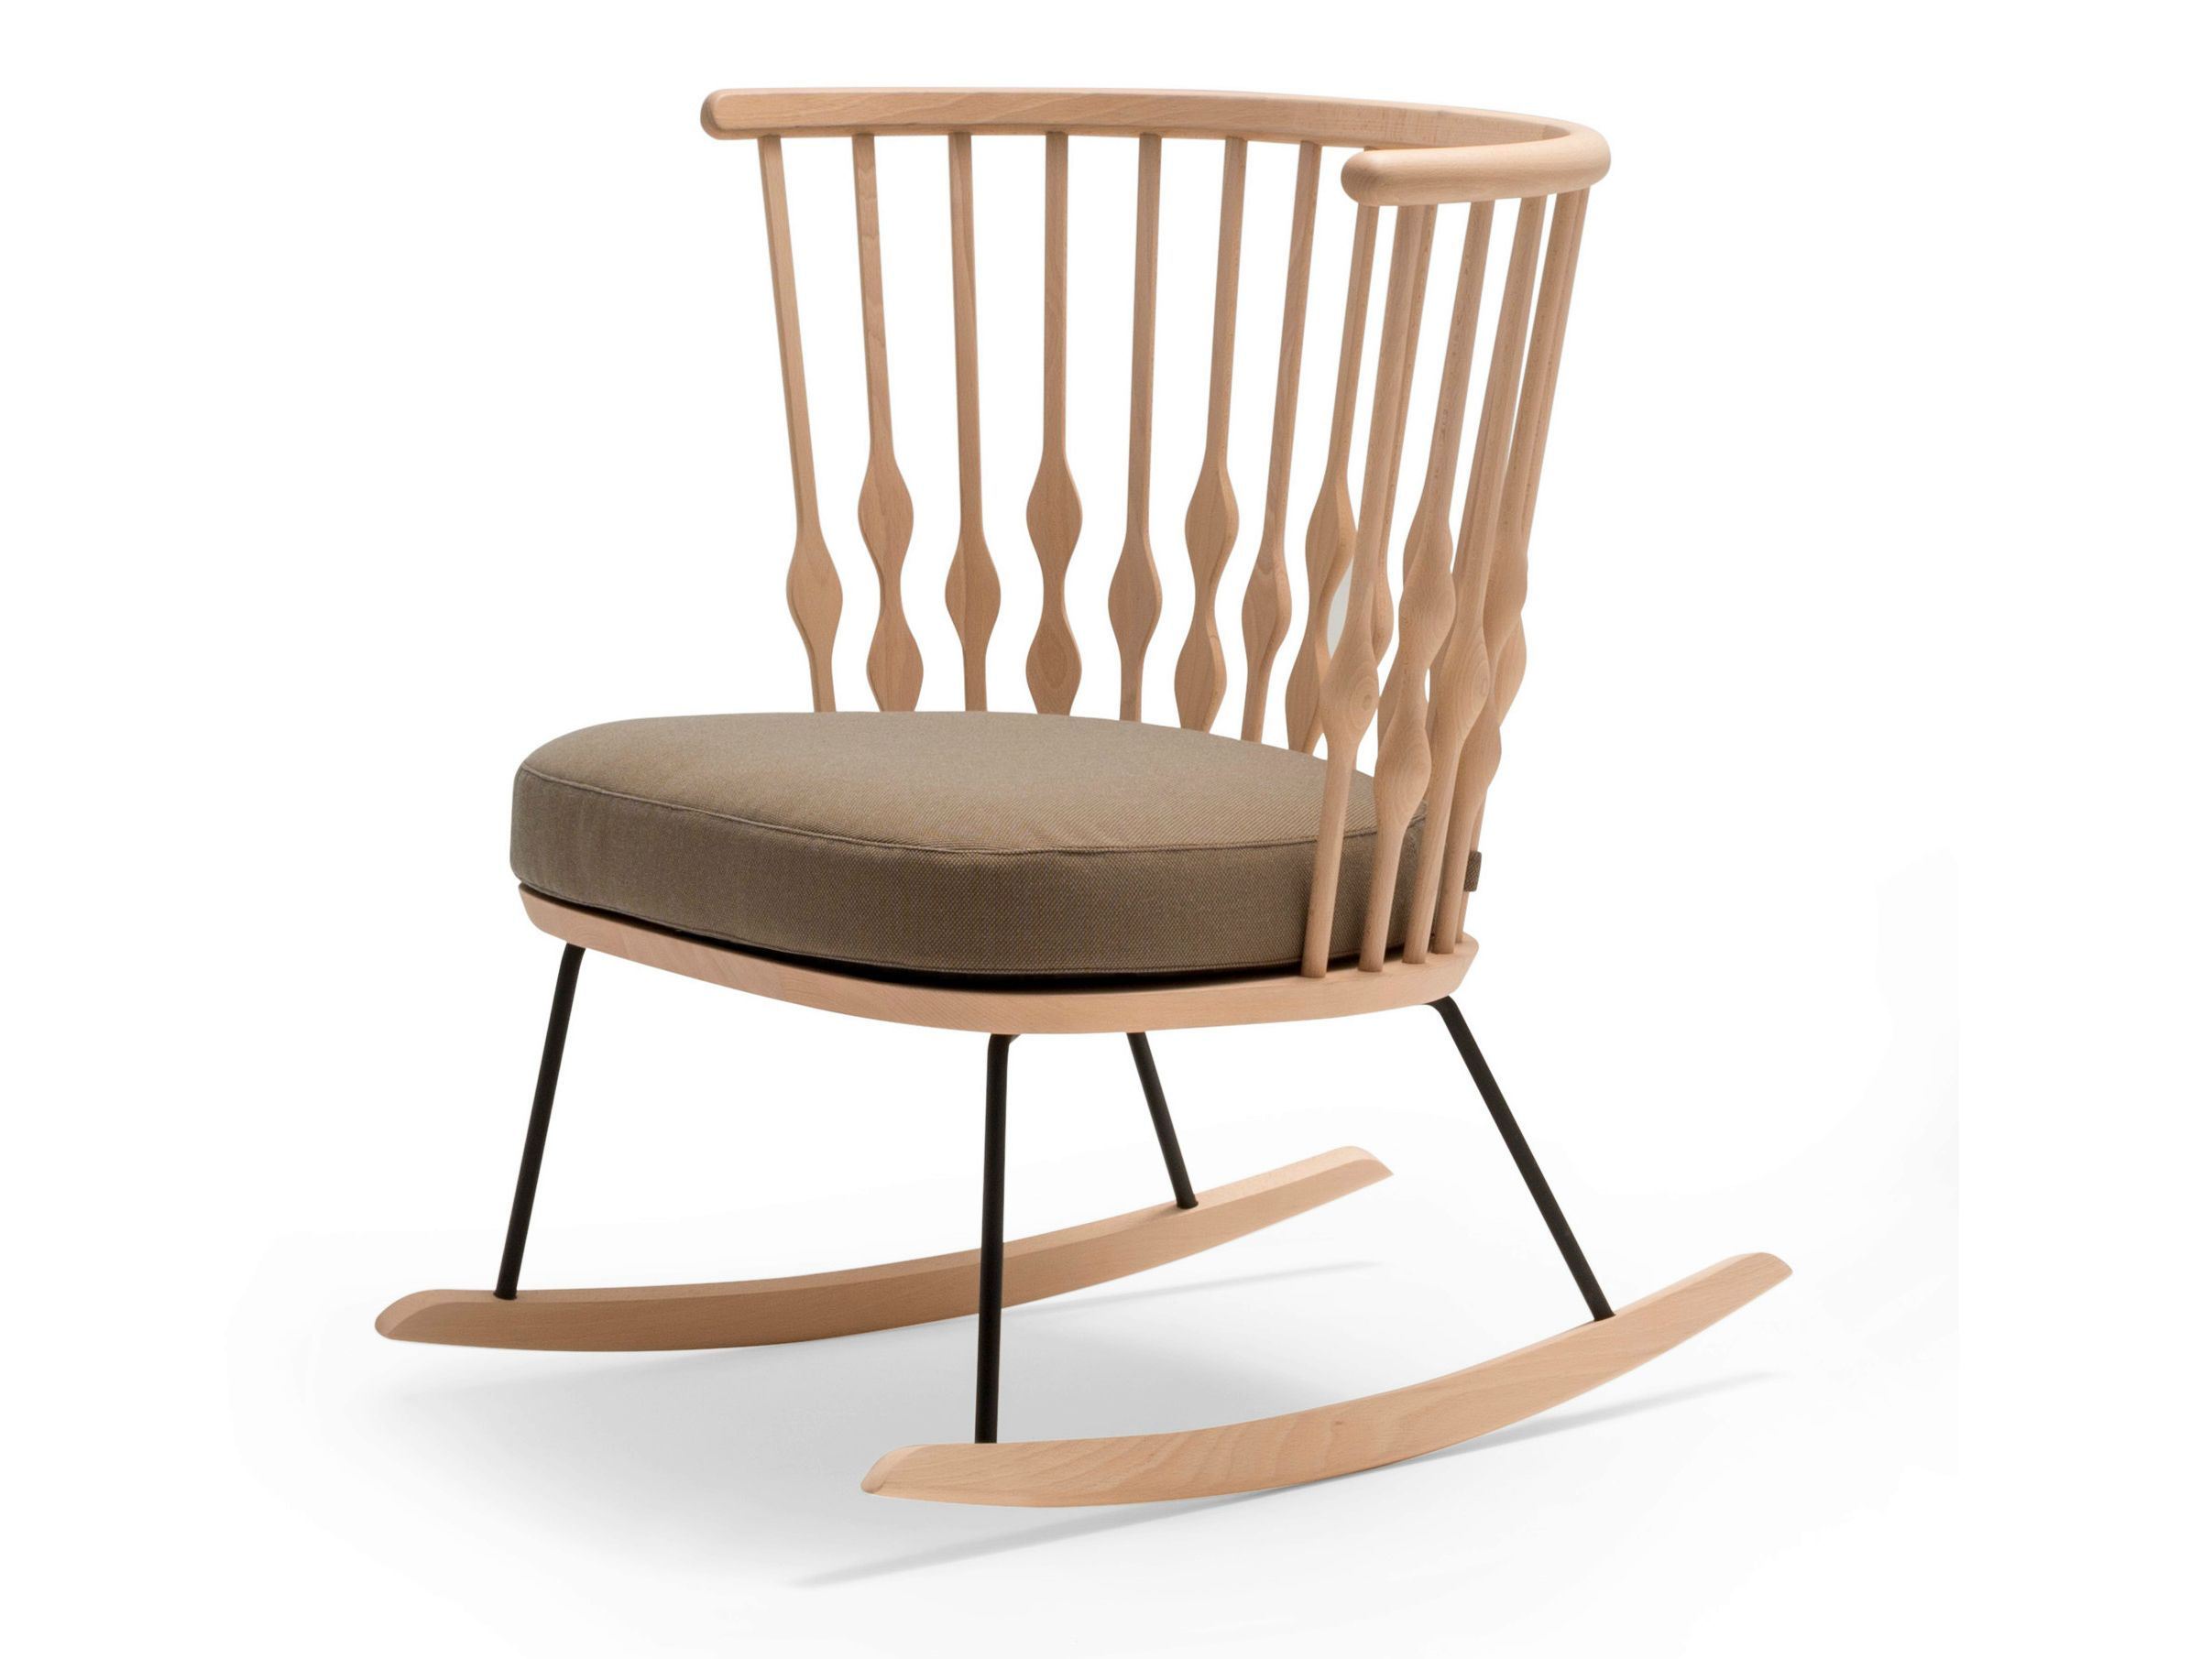 Wooden easy chair designs - Rocking Wooden Easy Chair Nub Collection By Andreu World Design Patricia Urquiola